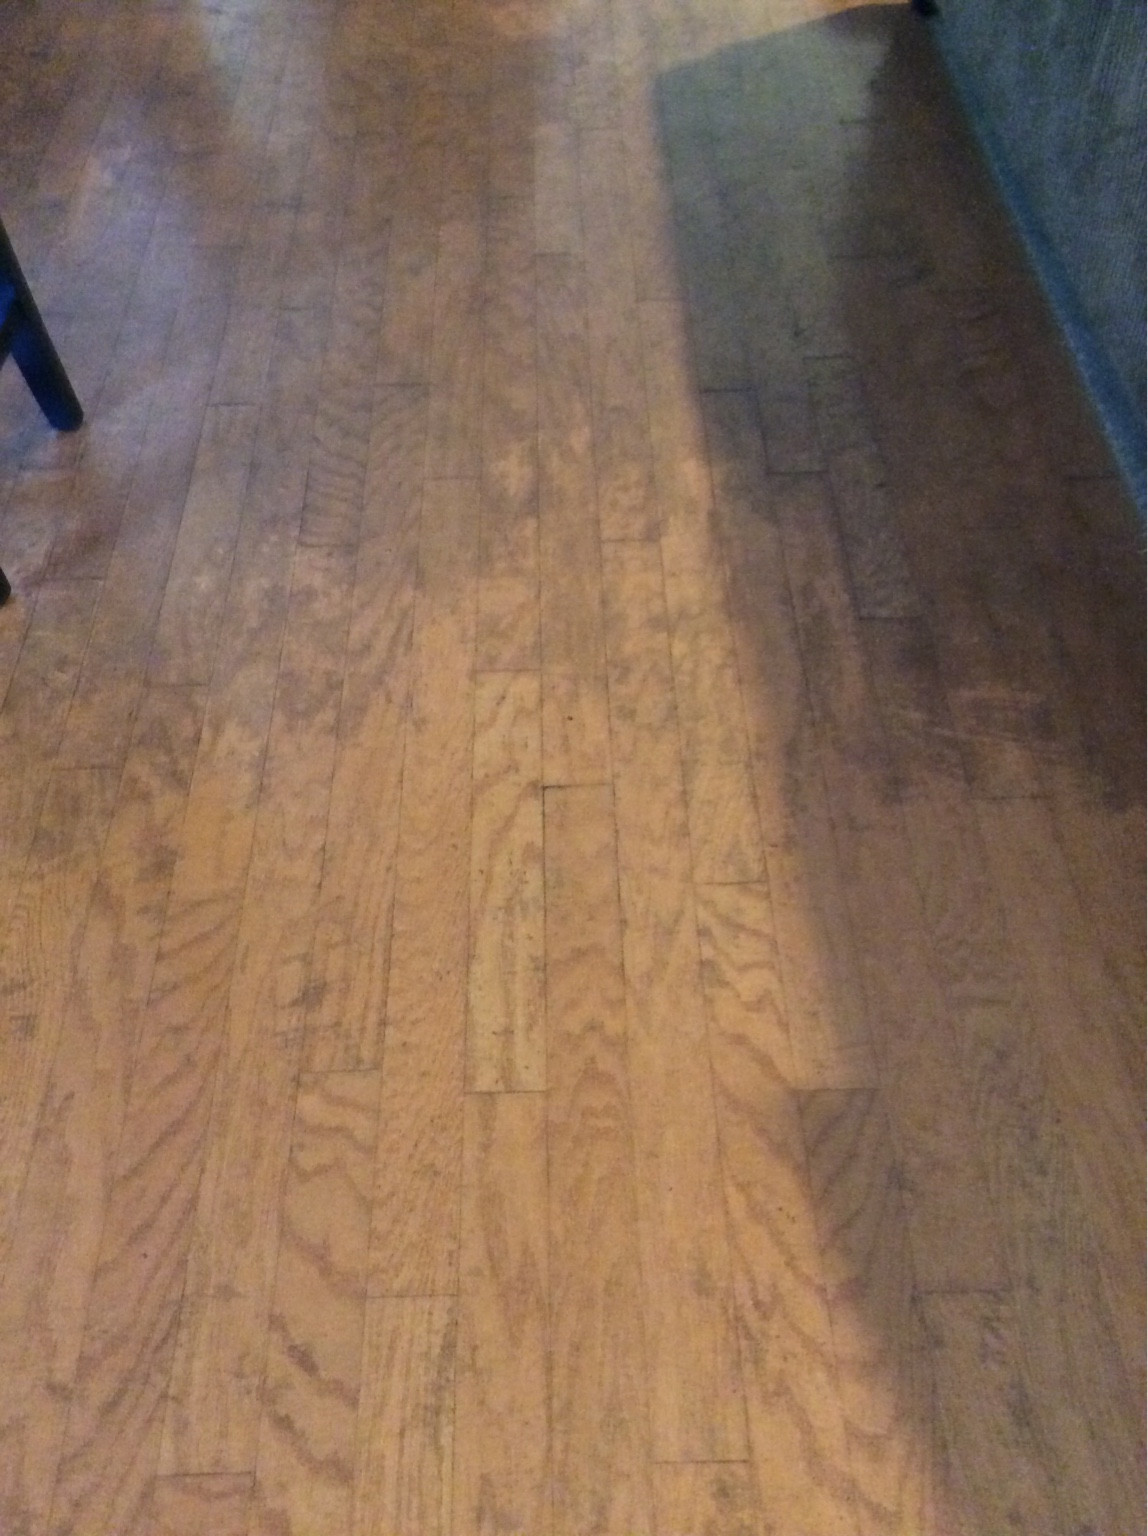 hardwood flooring care and maintenance of hardwood floor cleaning help truckmount forums 1 carpet inside how would you guys clean this wood floors